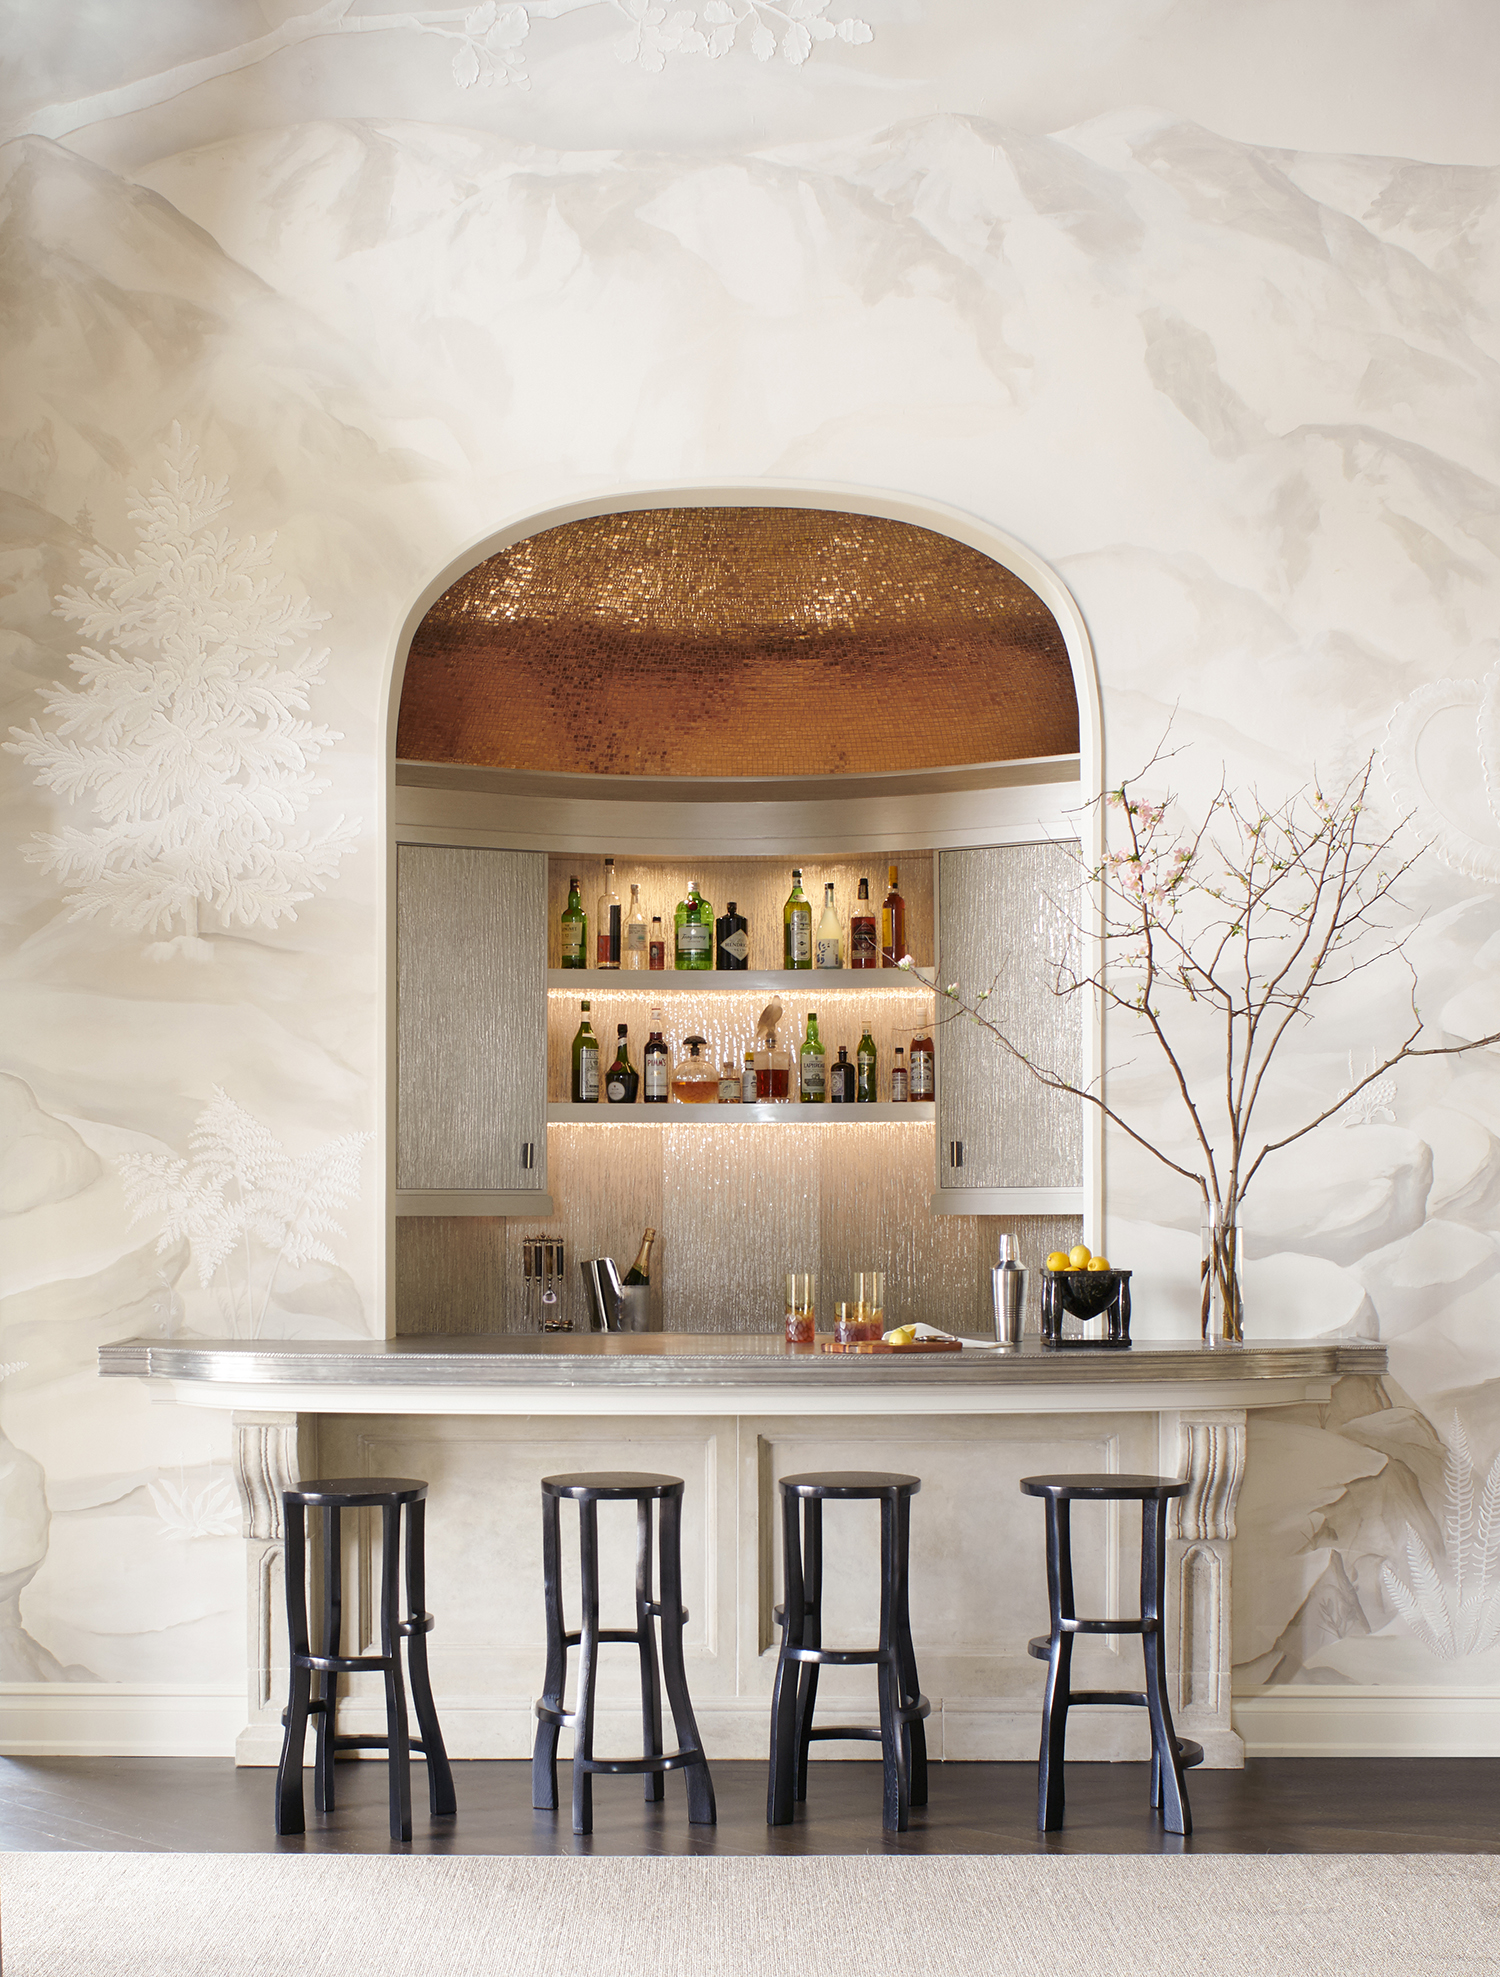 """Find the Right Finishes. """"A bar is about showing off,"""" says Wesley Moon. """"You could keep your liquor and glasses hidden in a cabinet, but you've decided to put them on display. Give guests something to talk about. Pick a cabinet finish that's a bit unusual or use a stone for the counter that's rare and special.""""   In this space, Moonusesa textured eglomise glass forthe upper cabinet doors and backsplash, which are framed by woodwork with a metallic lacquer finish. To add drama,the domed ceiling is covered in gold-leaf mosaic tile."""